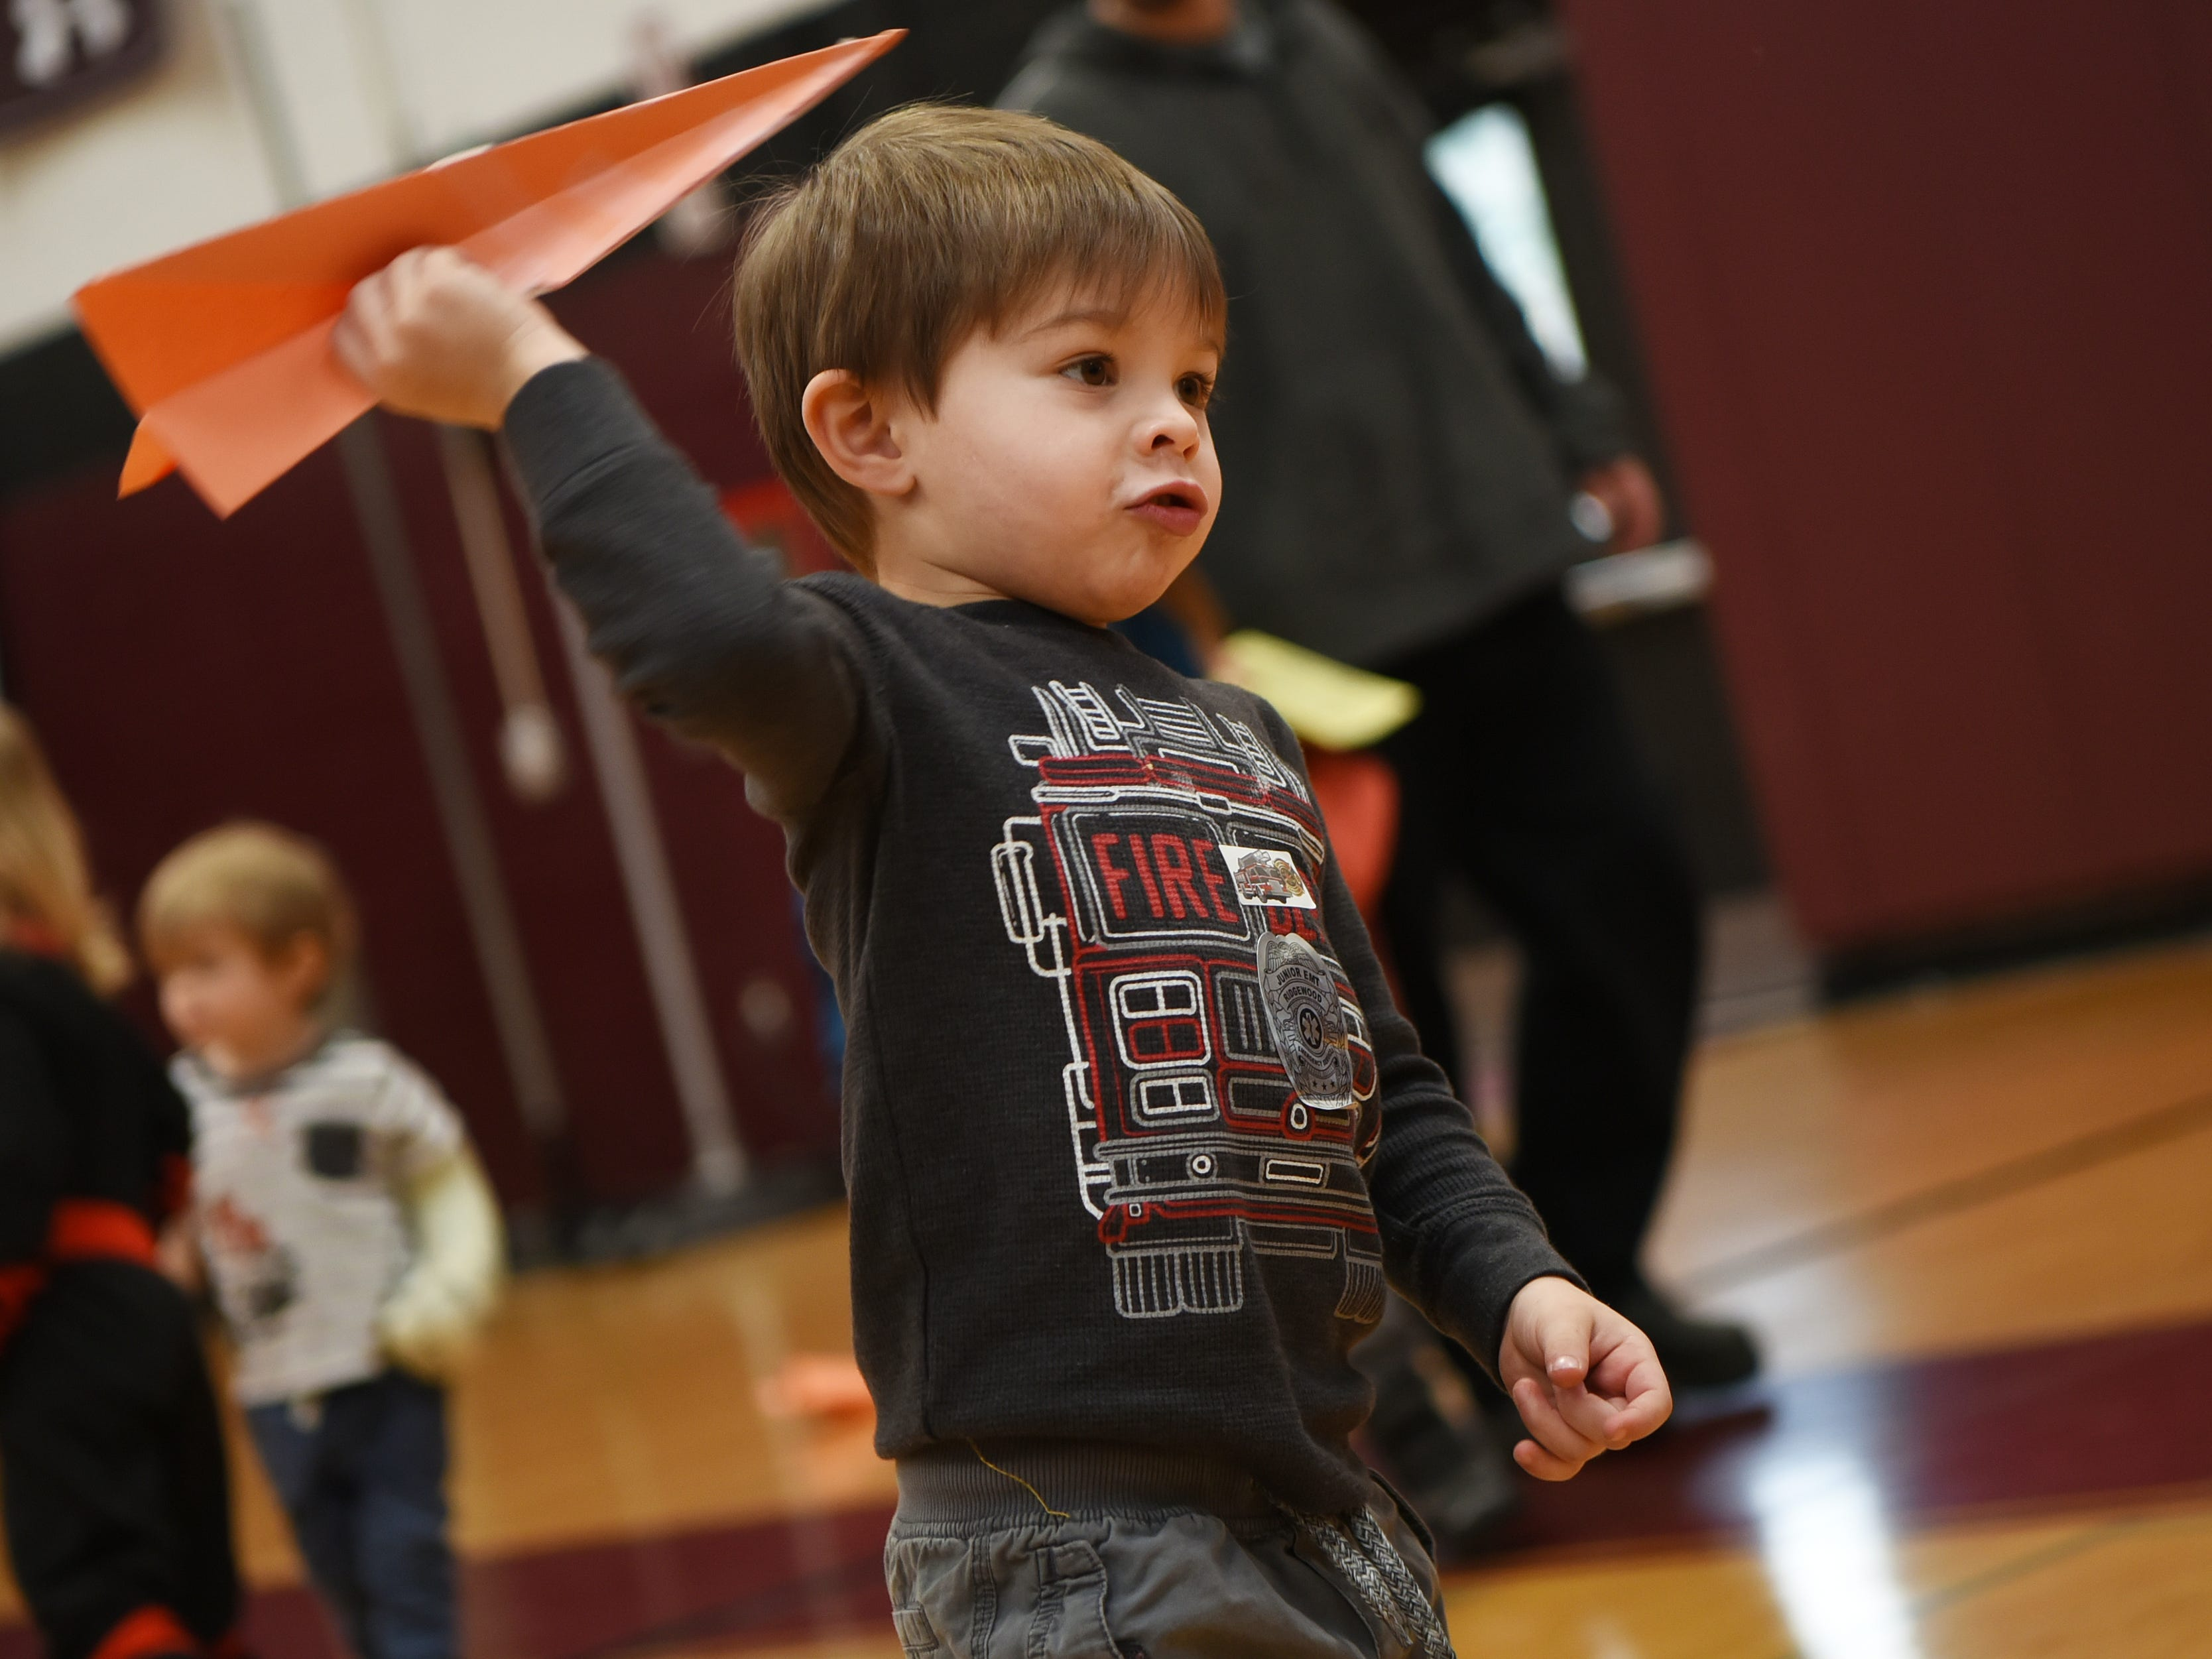 Landon Pomo, 4 gets ready to launch his paper airplane at Super Science Saturday held at Ridgewood High School in Ridgewood on Saturday March 2, 2019.